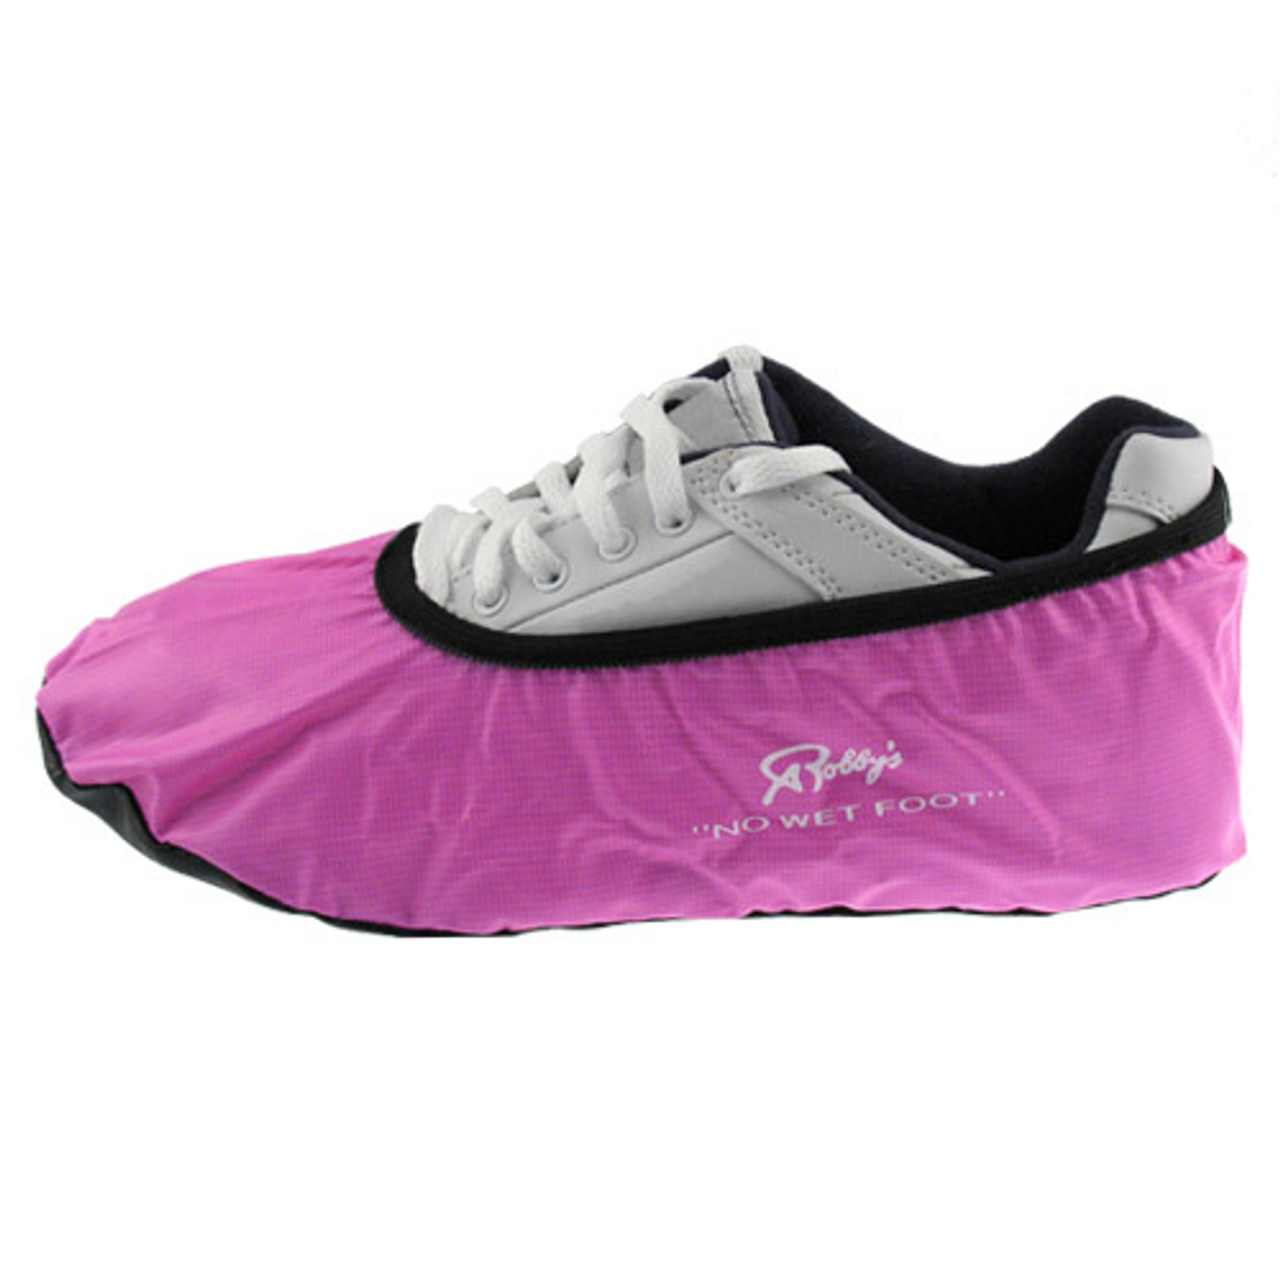 Robbys No Wet Foot Shoe Cover,